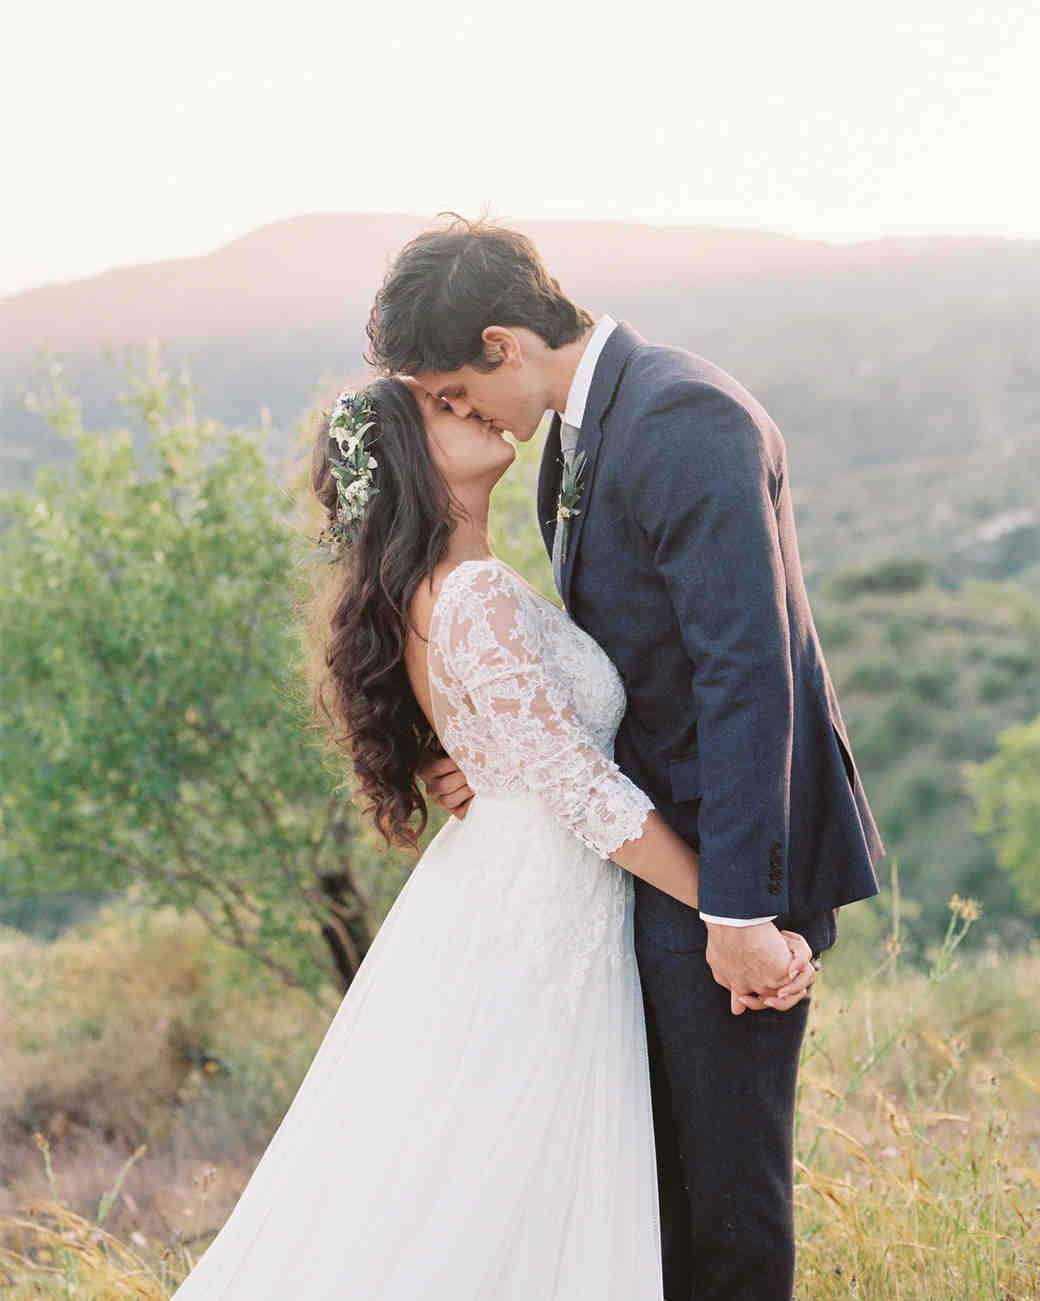 daphne jack wedding spain couple kissing